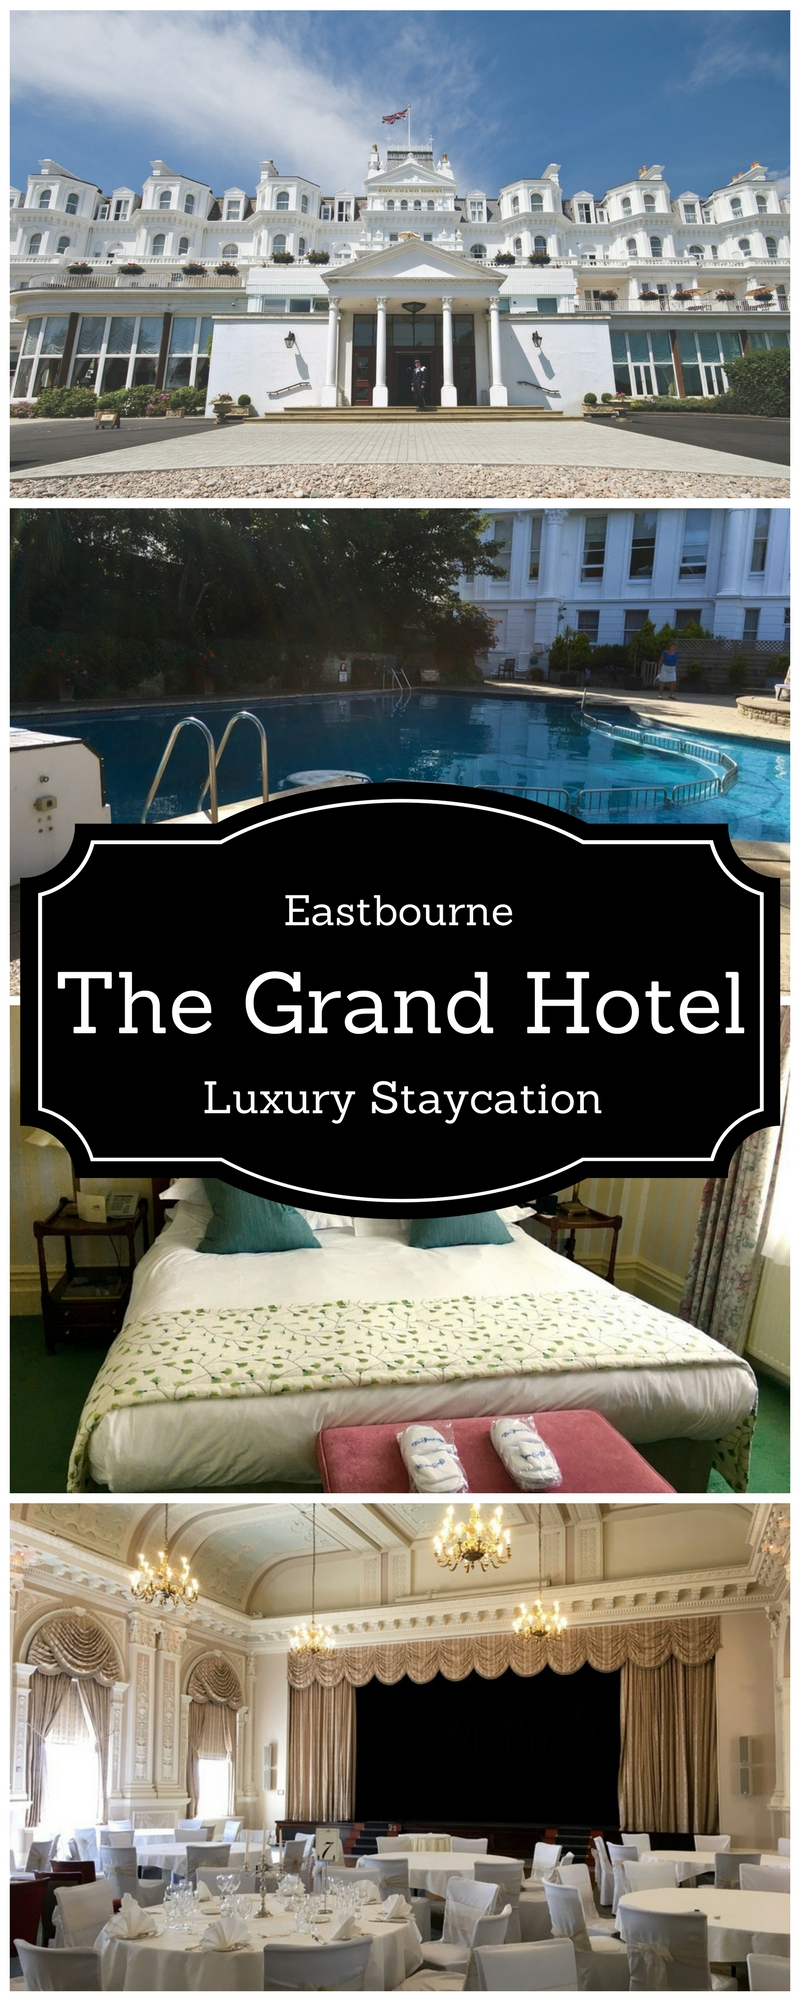 Eastbourne - The Grand Hotel - A luxury staycation by the sea at the Grand Hotel in Eastbourne UK